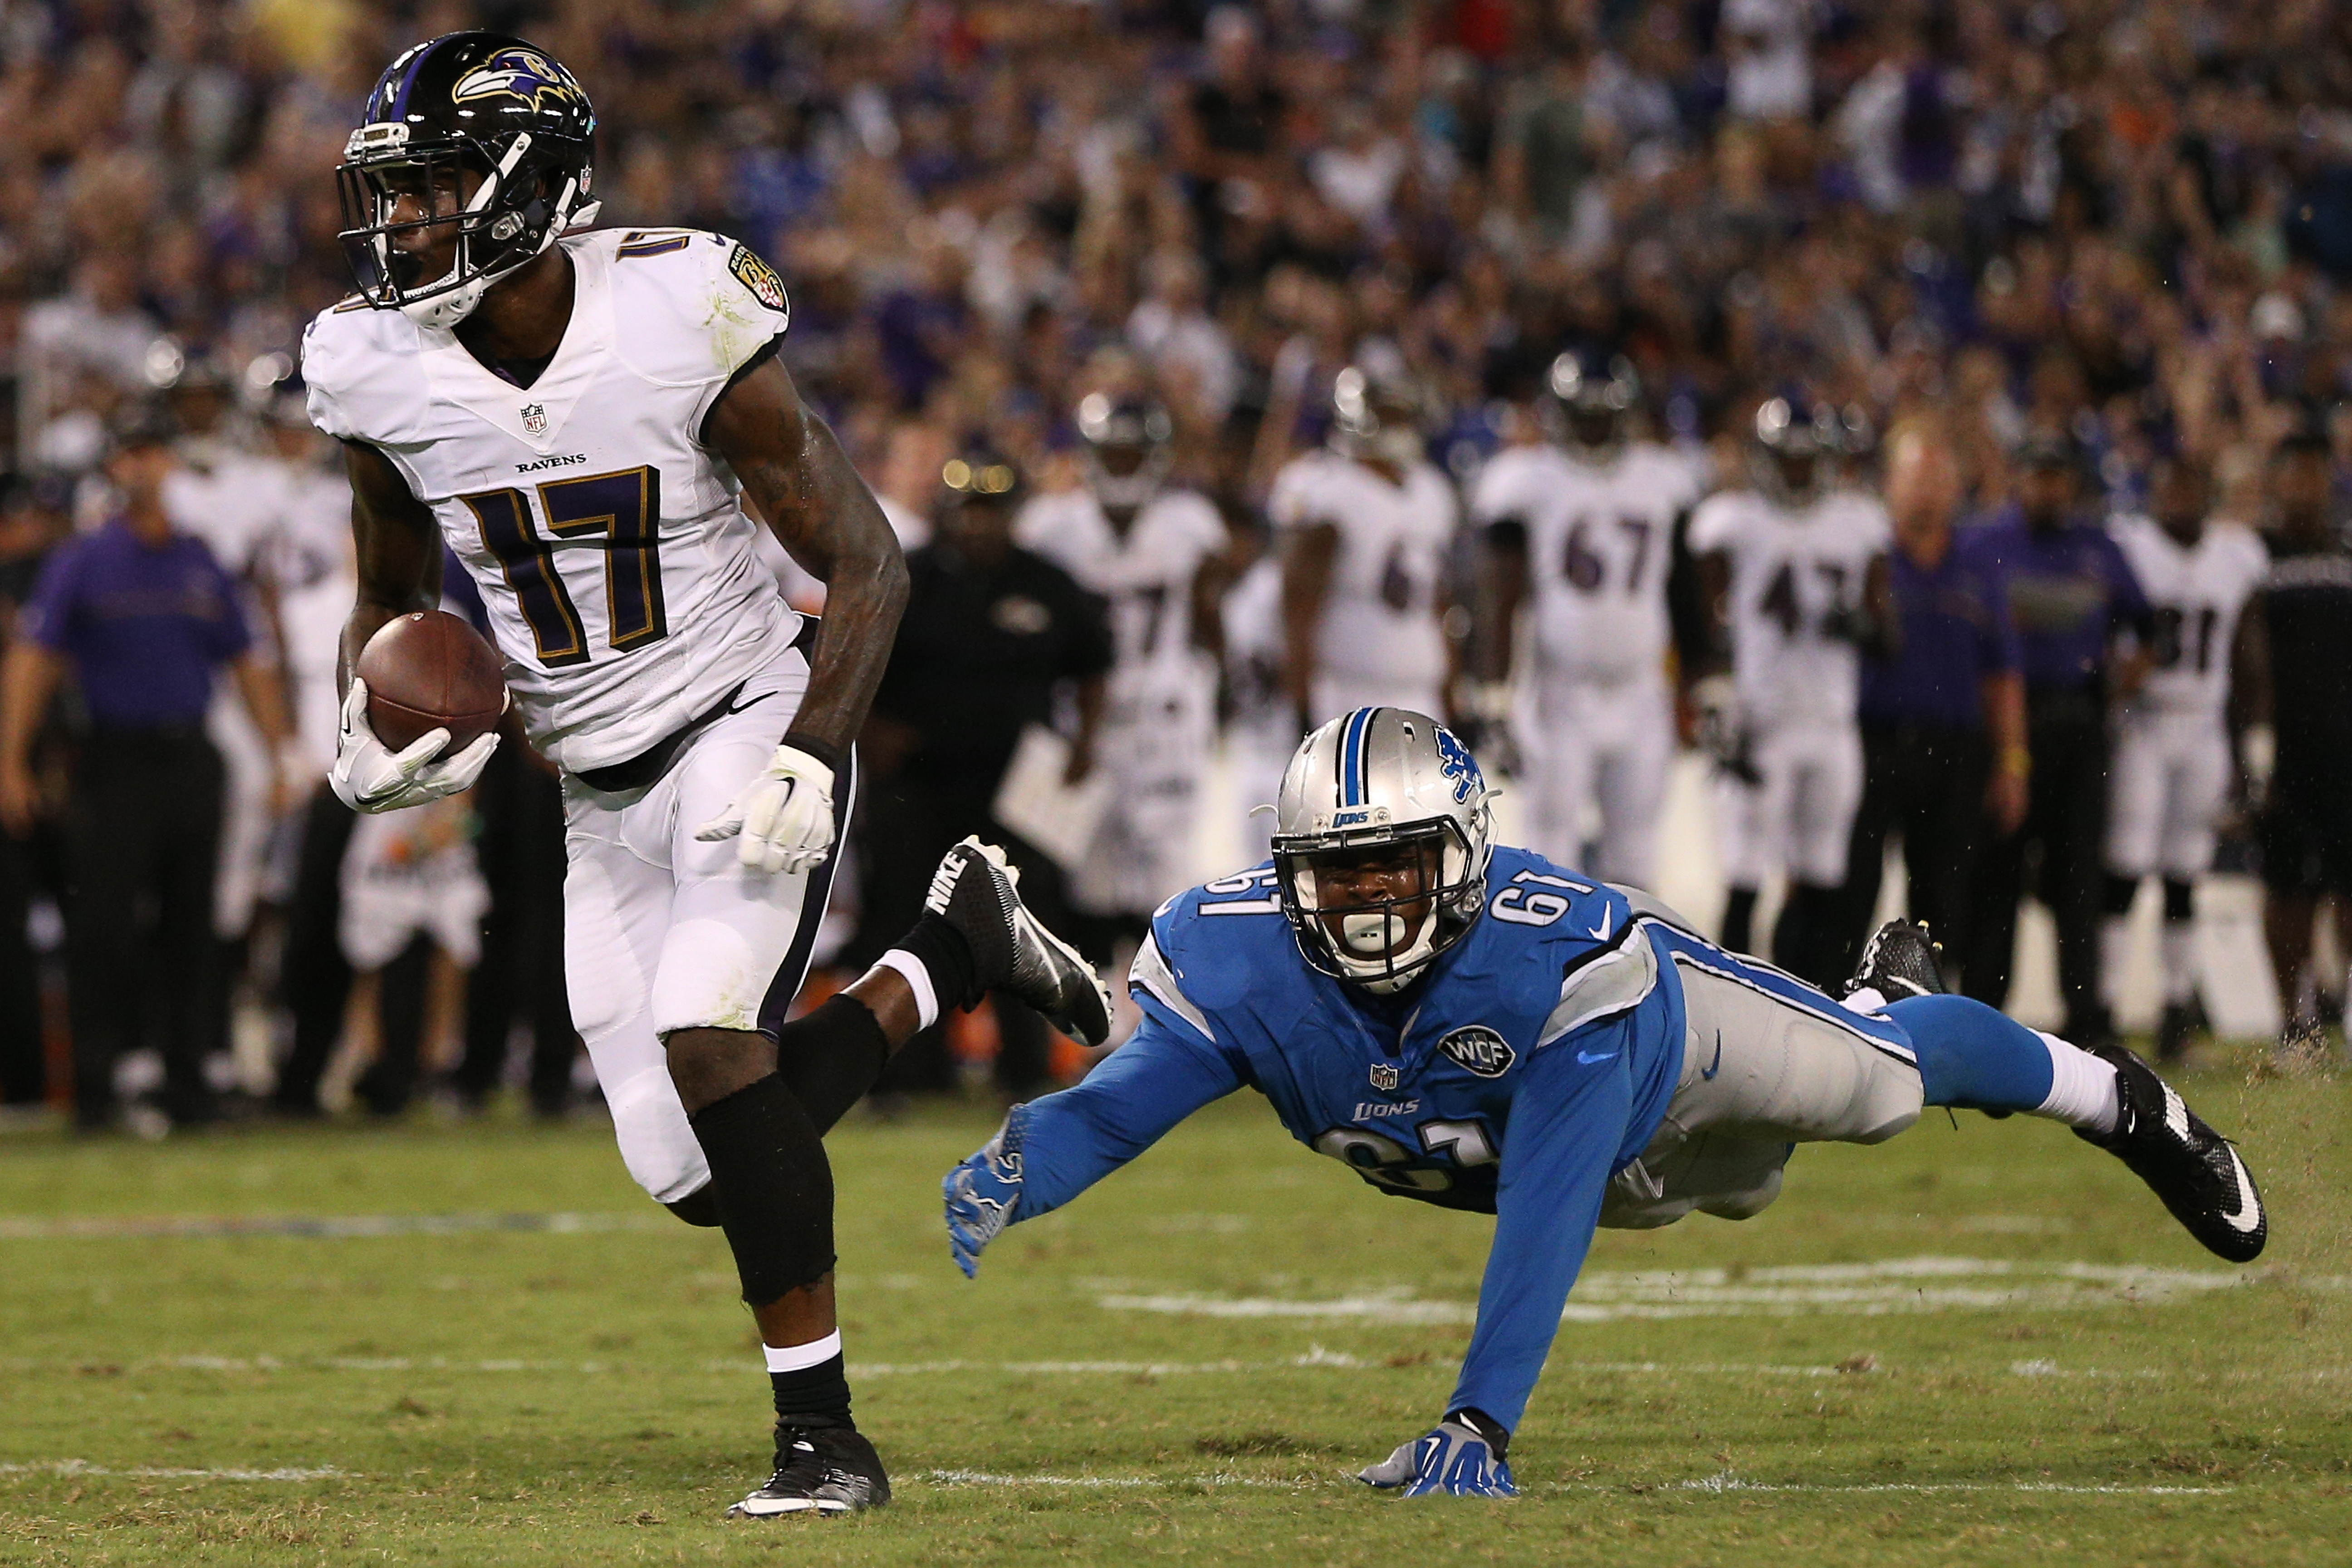 Former Ravens wide receiver Jeremy Butler is looking forward to reuniting with Tyrod Taylor on the Bills. (Photo by Patrick Smith/Getty Images)